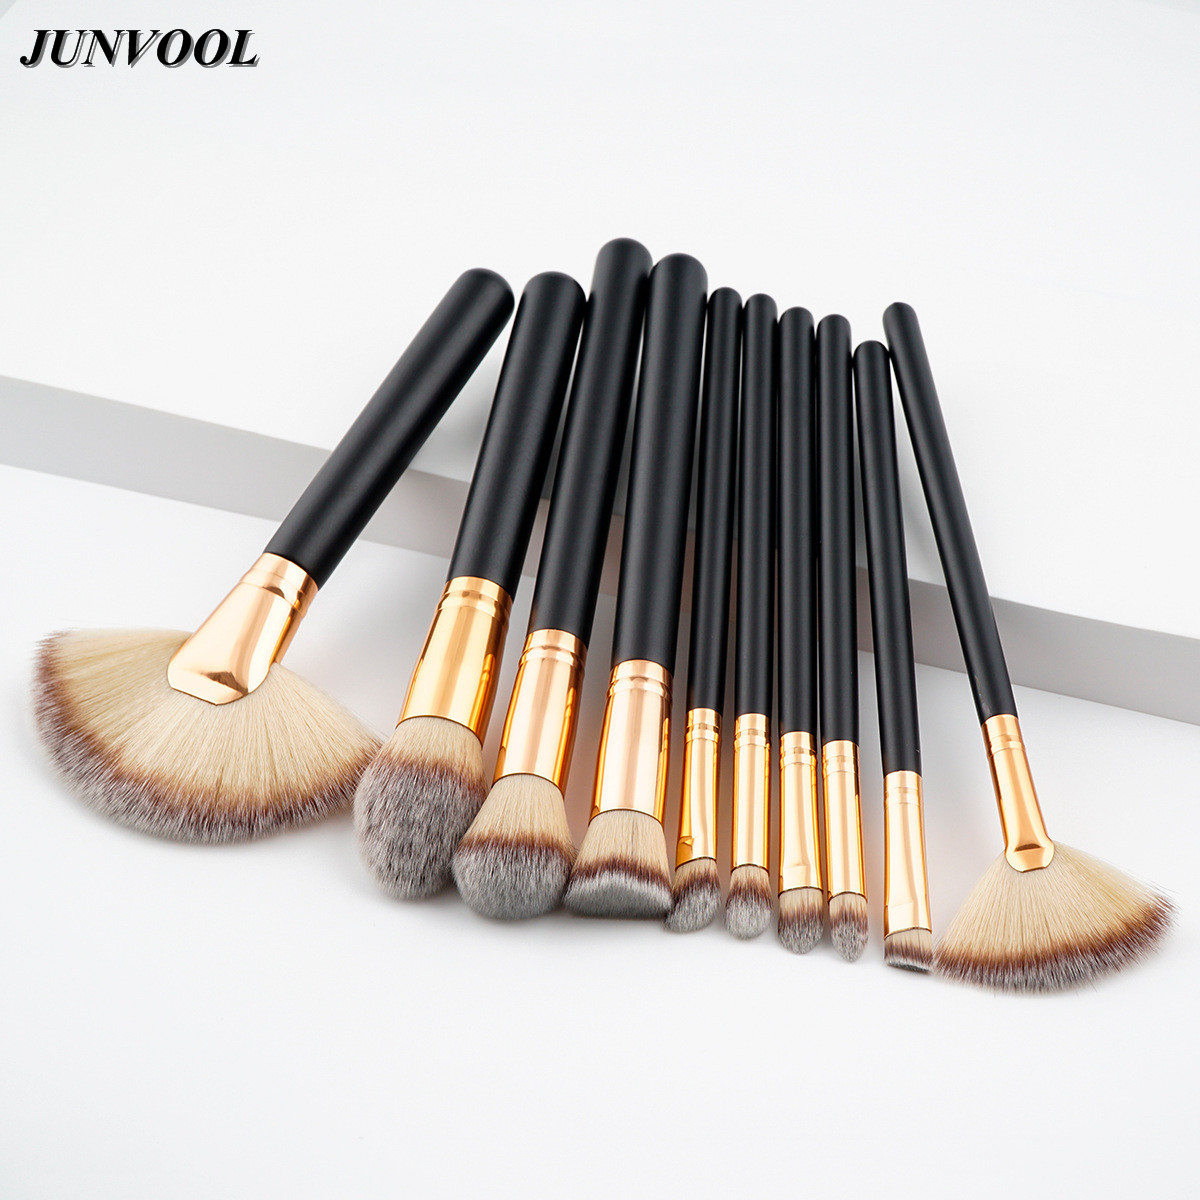 Big Fan Cosmetic Brush Soft Blending Pencil 10pcs Black Gold Foundation Eye Shadow Eyeliner Lip Makeup Artist Brushes Tool Kit cosmetic makeup dual head eyeliner pencil white black